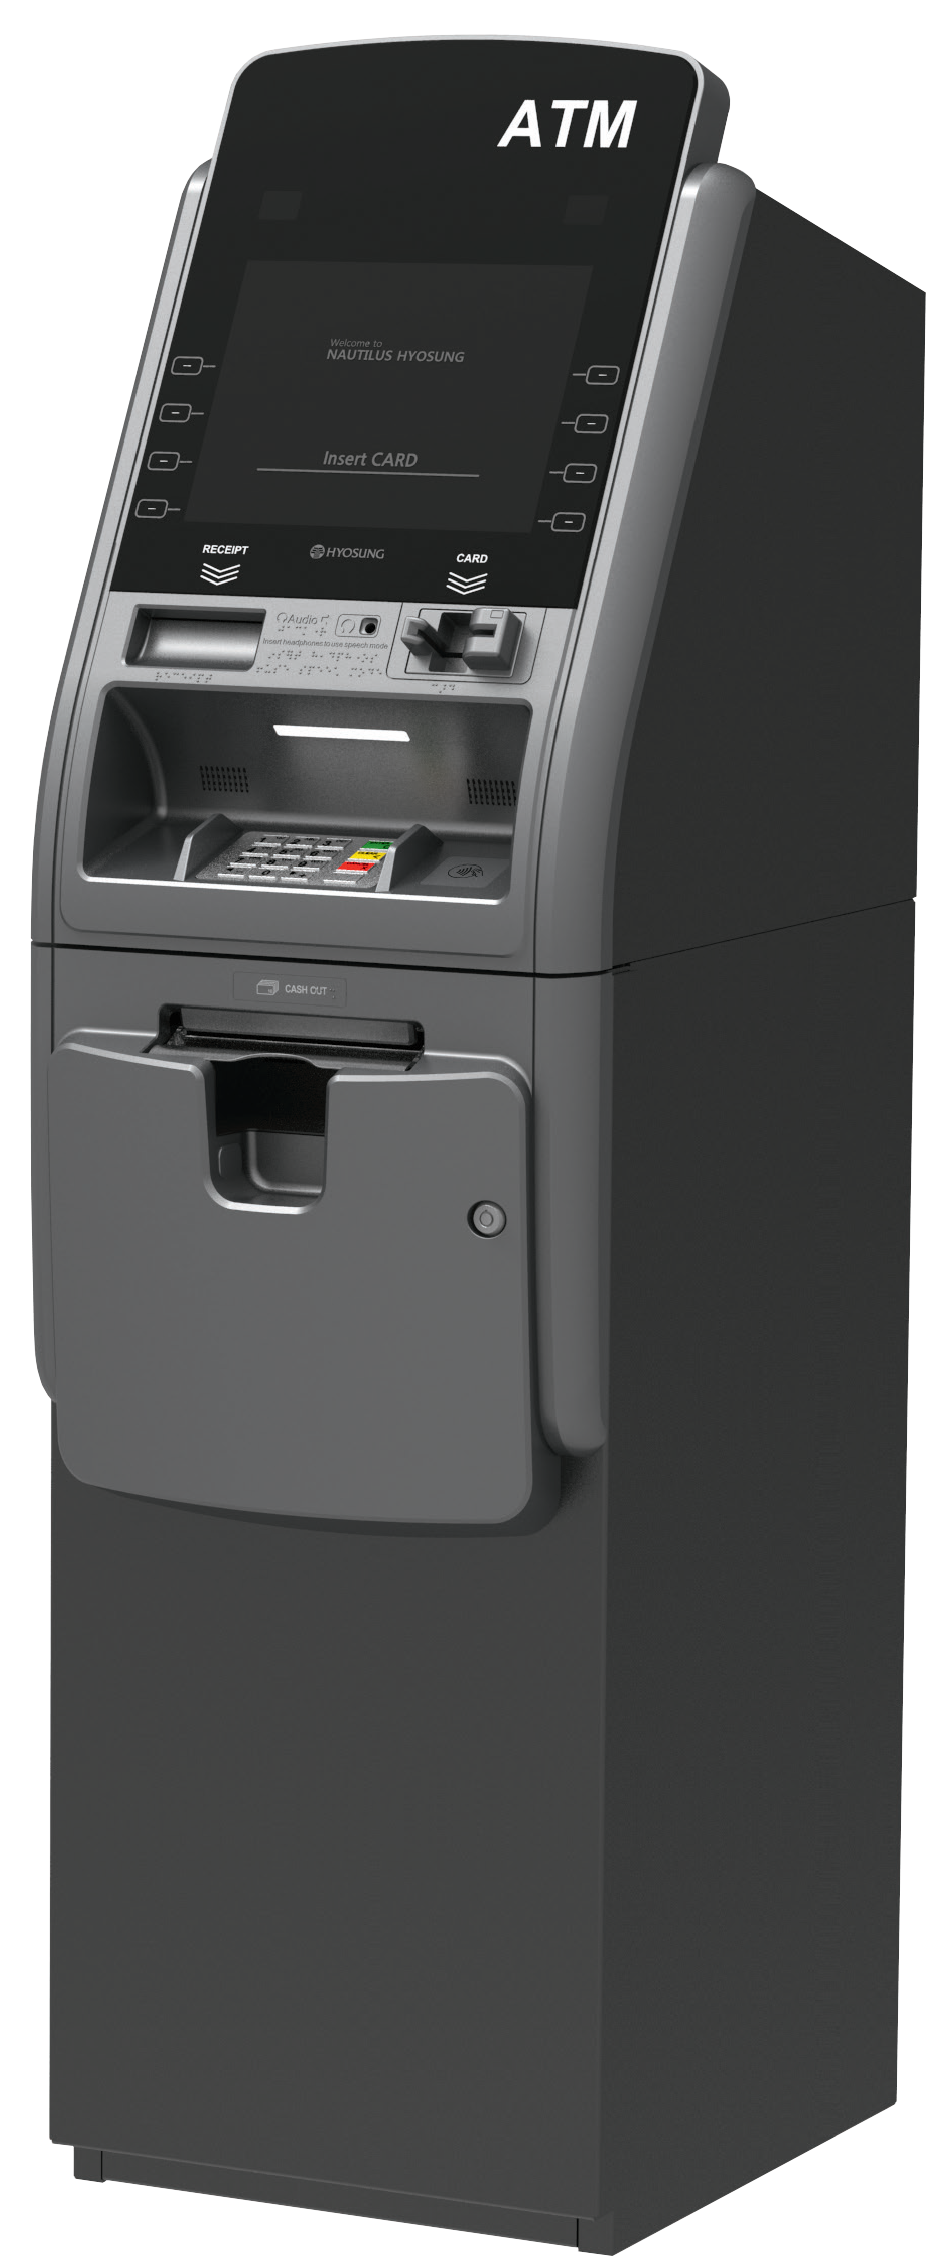 Hyosung Force ATM placement by eGlobal ATM Services